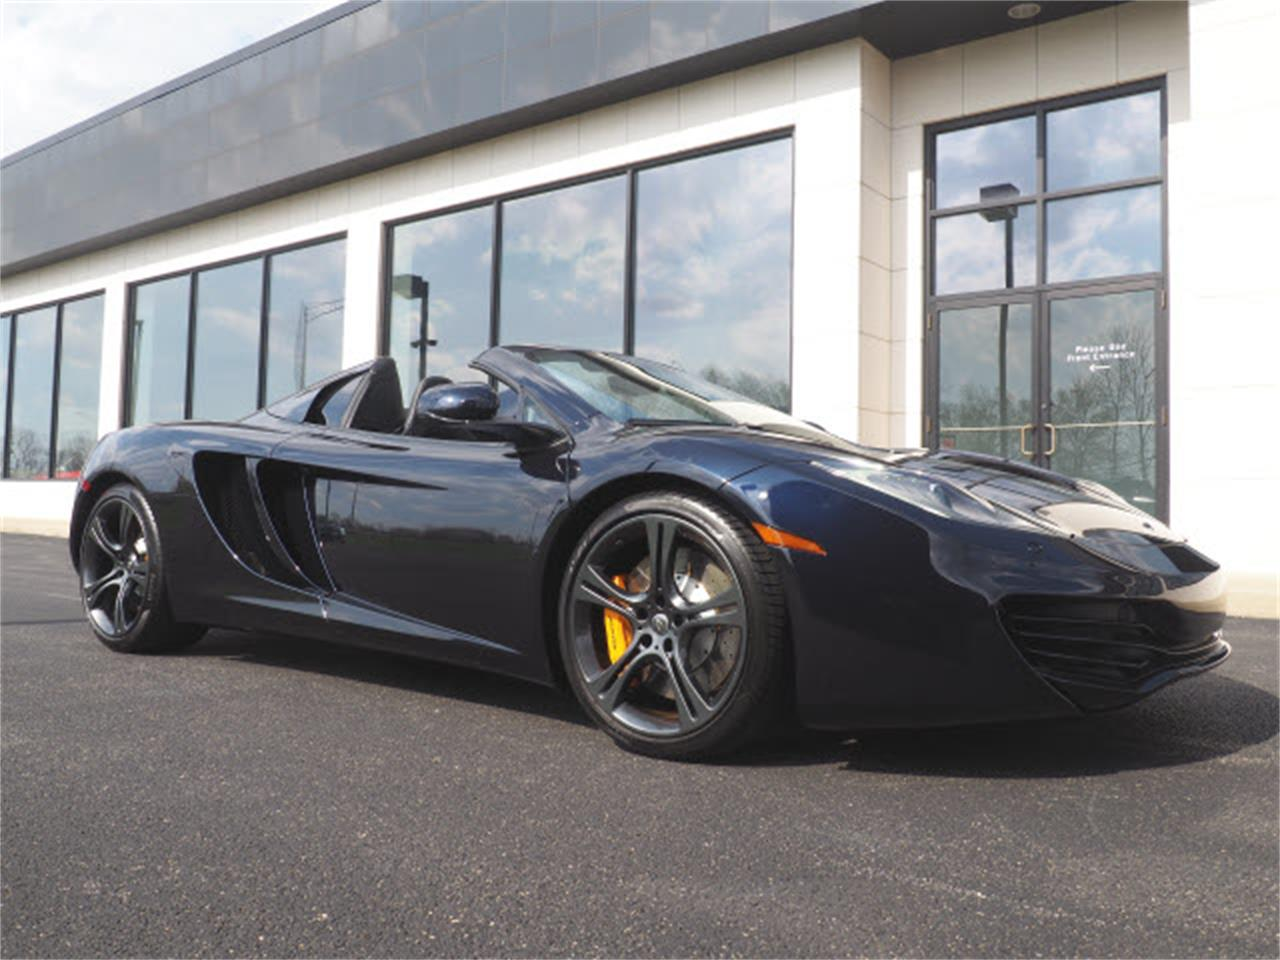 https://ccmarketplace.azureedge.net/cc-temp/listing/108/8247/11765328-2013-mclaren-mp4-12c-std.jpg